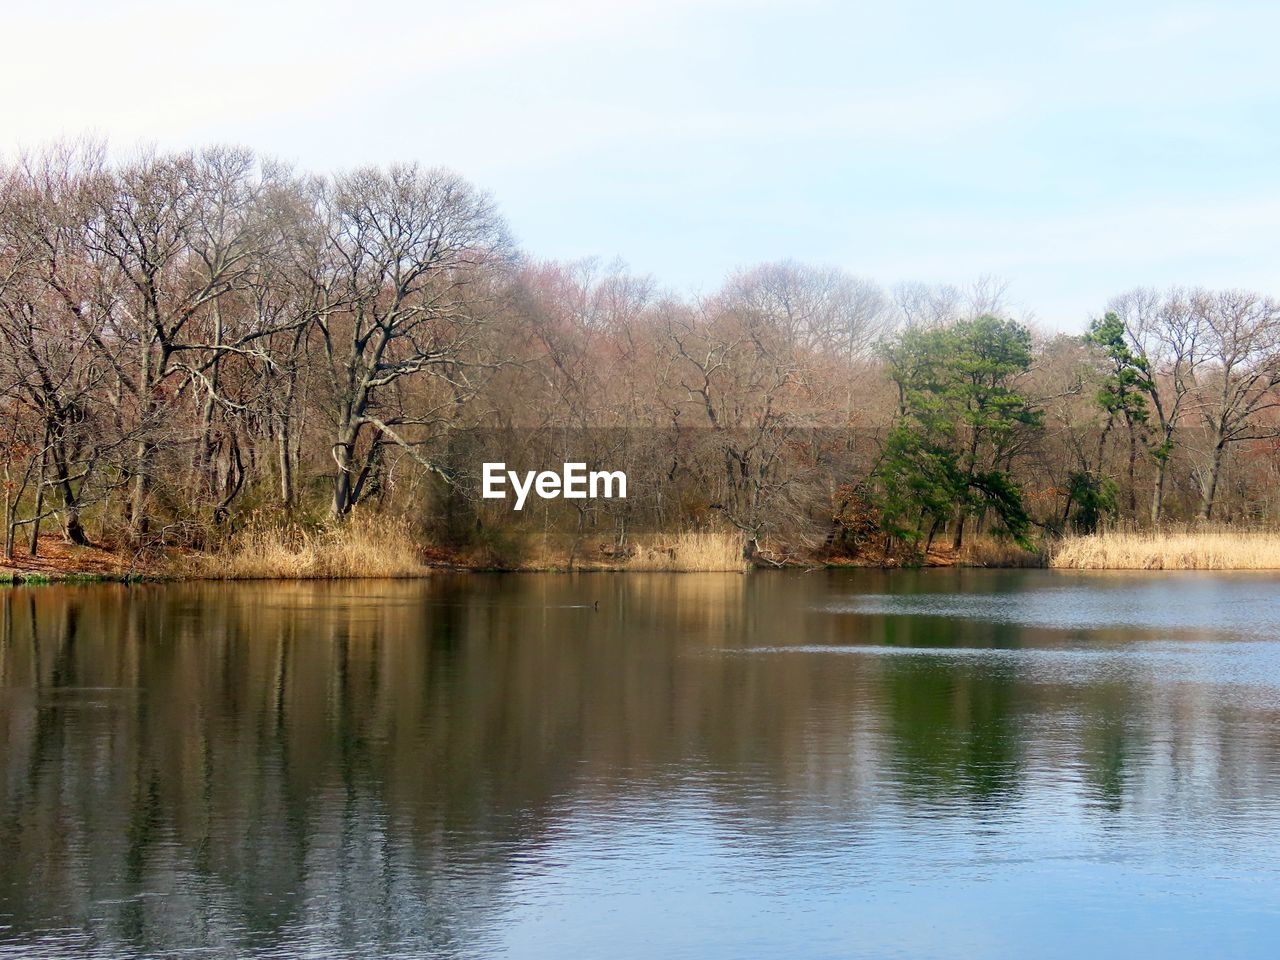 water, tree, sky, lake, plant, reflection, beauty in nature, tranquility, scenics - nature, tranquil scene, waterfront, no people, nature, day, non-urban scene, growth, idyllic, bare tree, outdoors